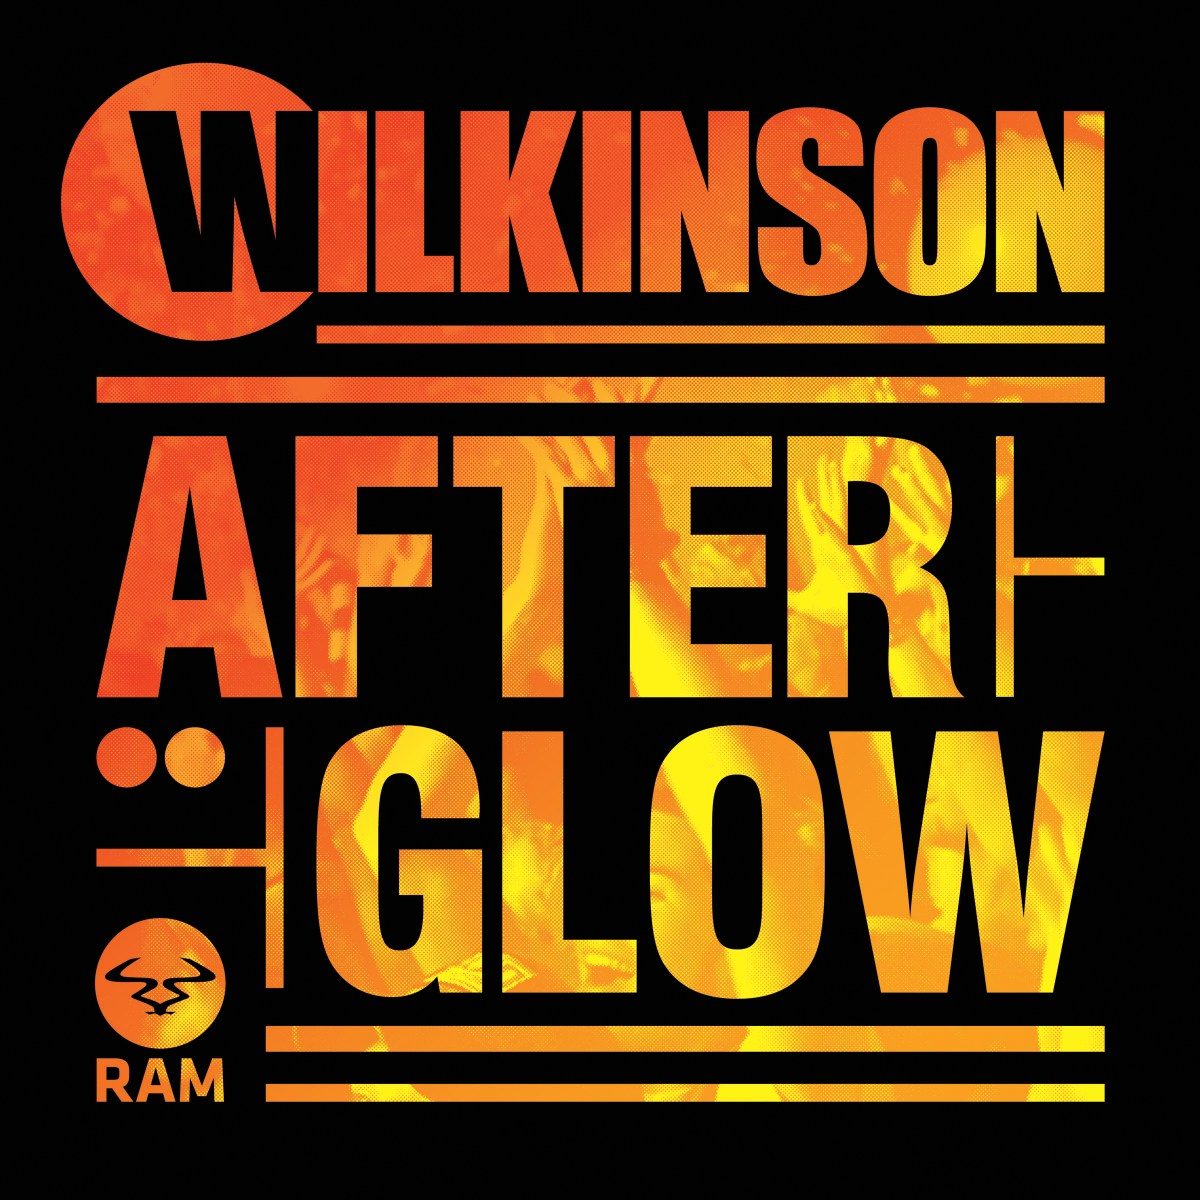 AFTERGLOW_PACKSHOT